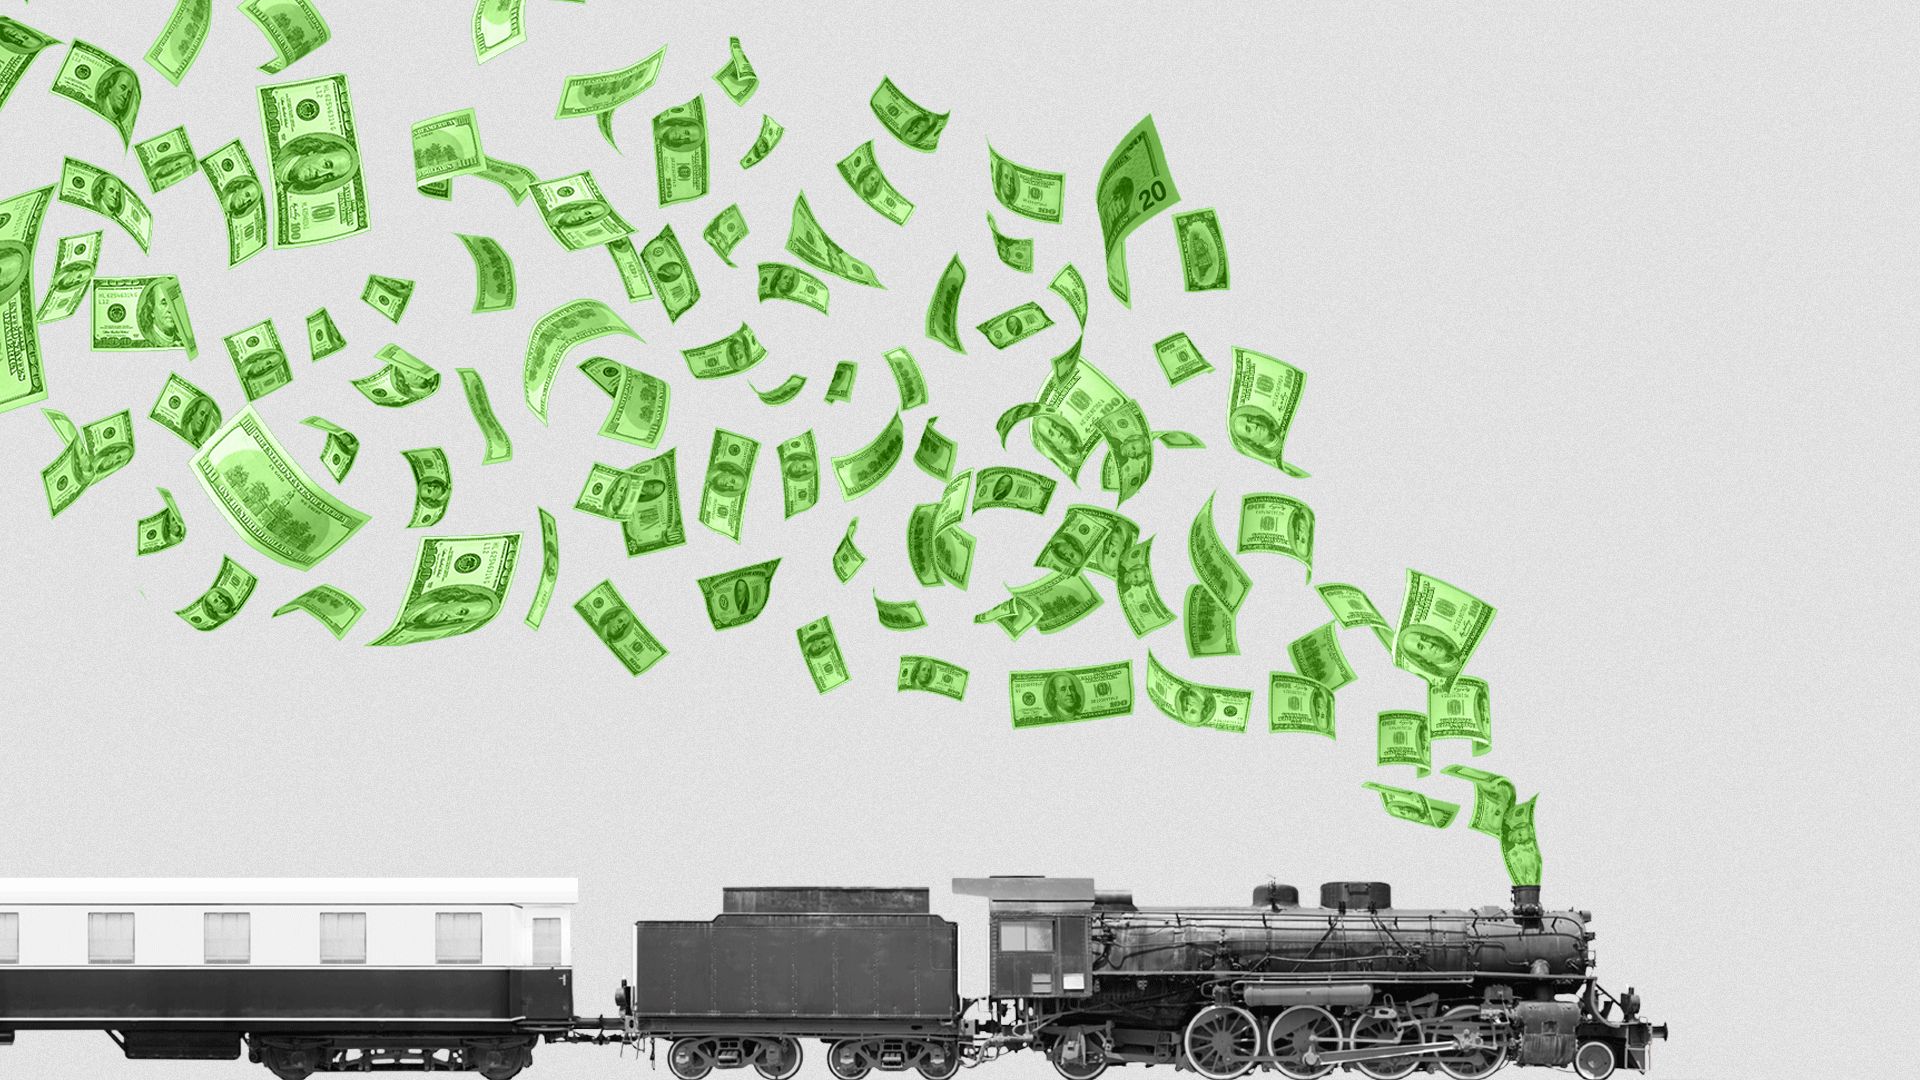 Illustration of a locomotive train with dollar bills flying out of the smoke stack.